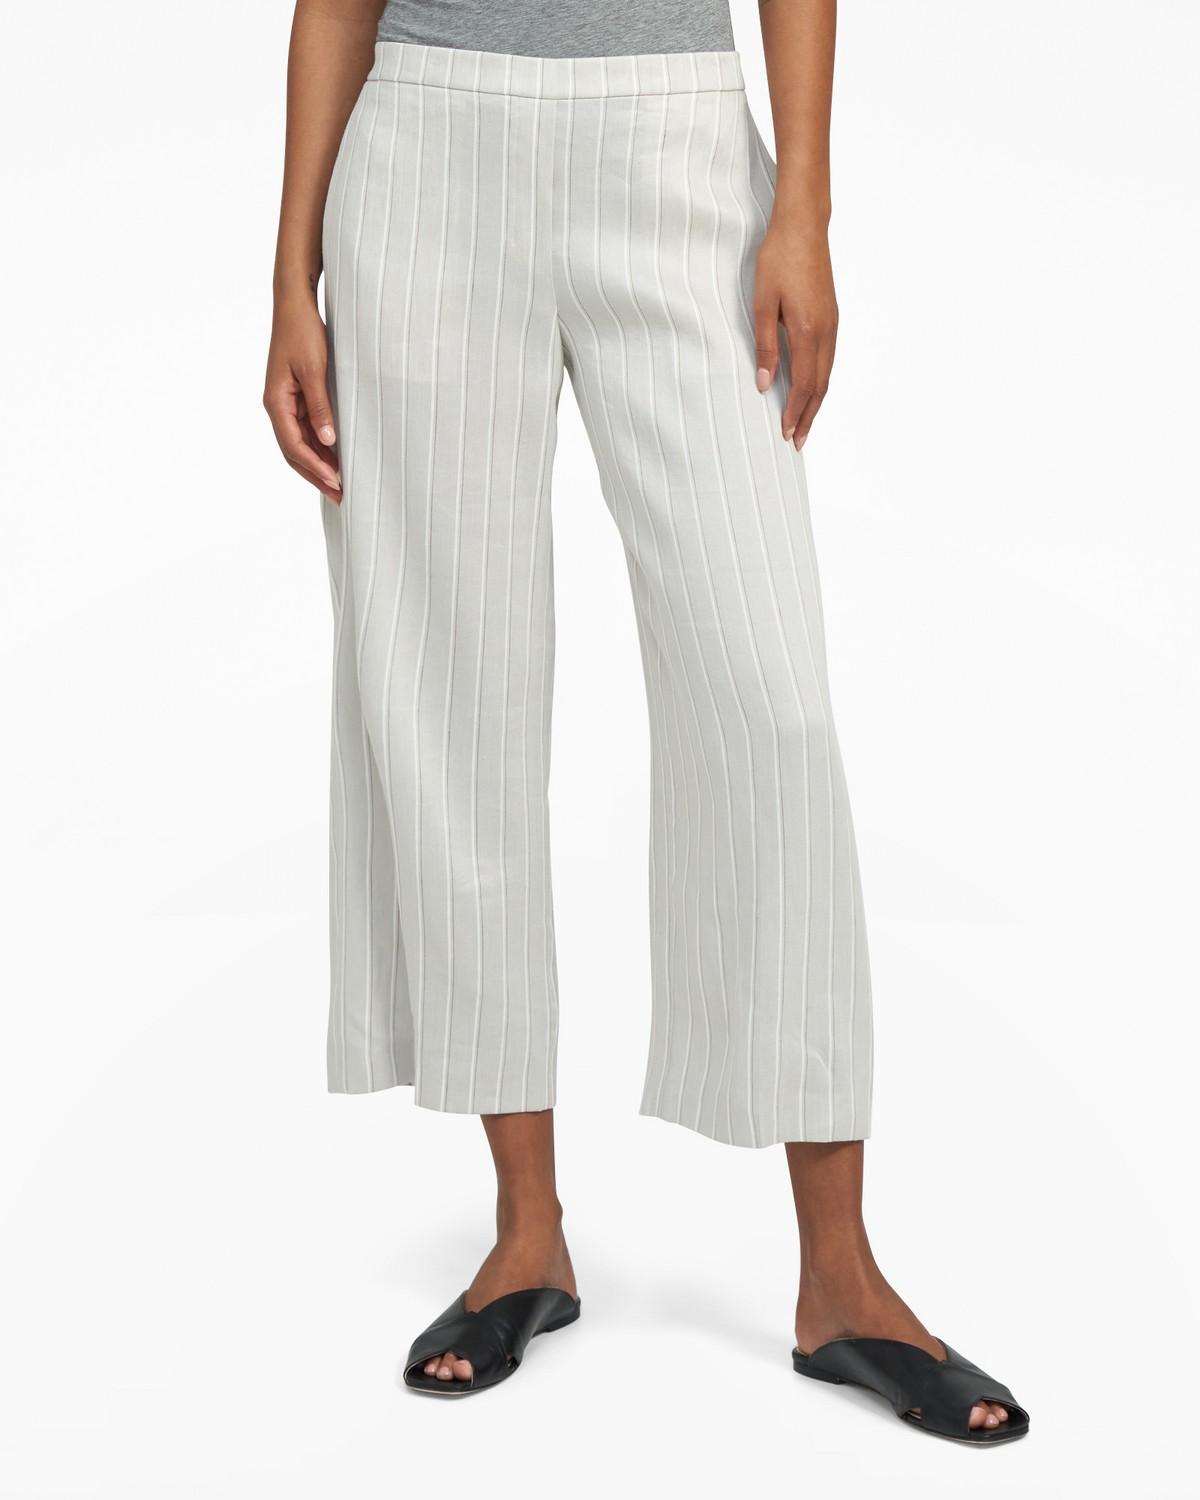 Cropped Pull-On Pant in Striped Stretch Linen